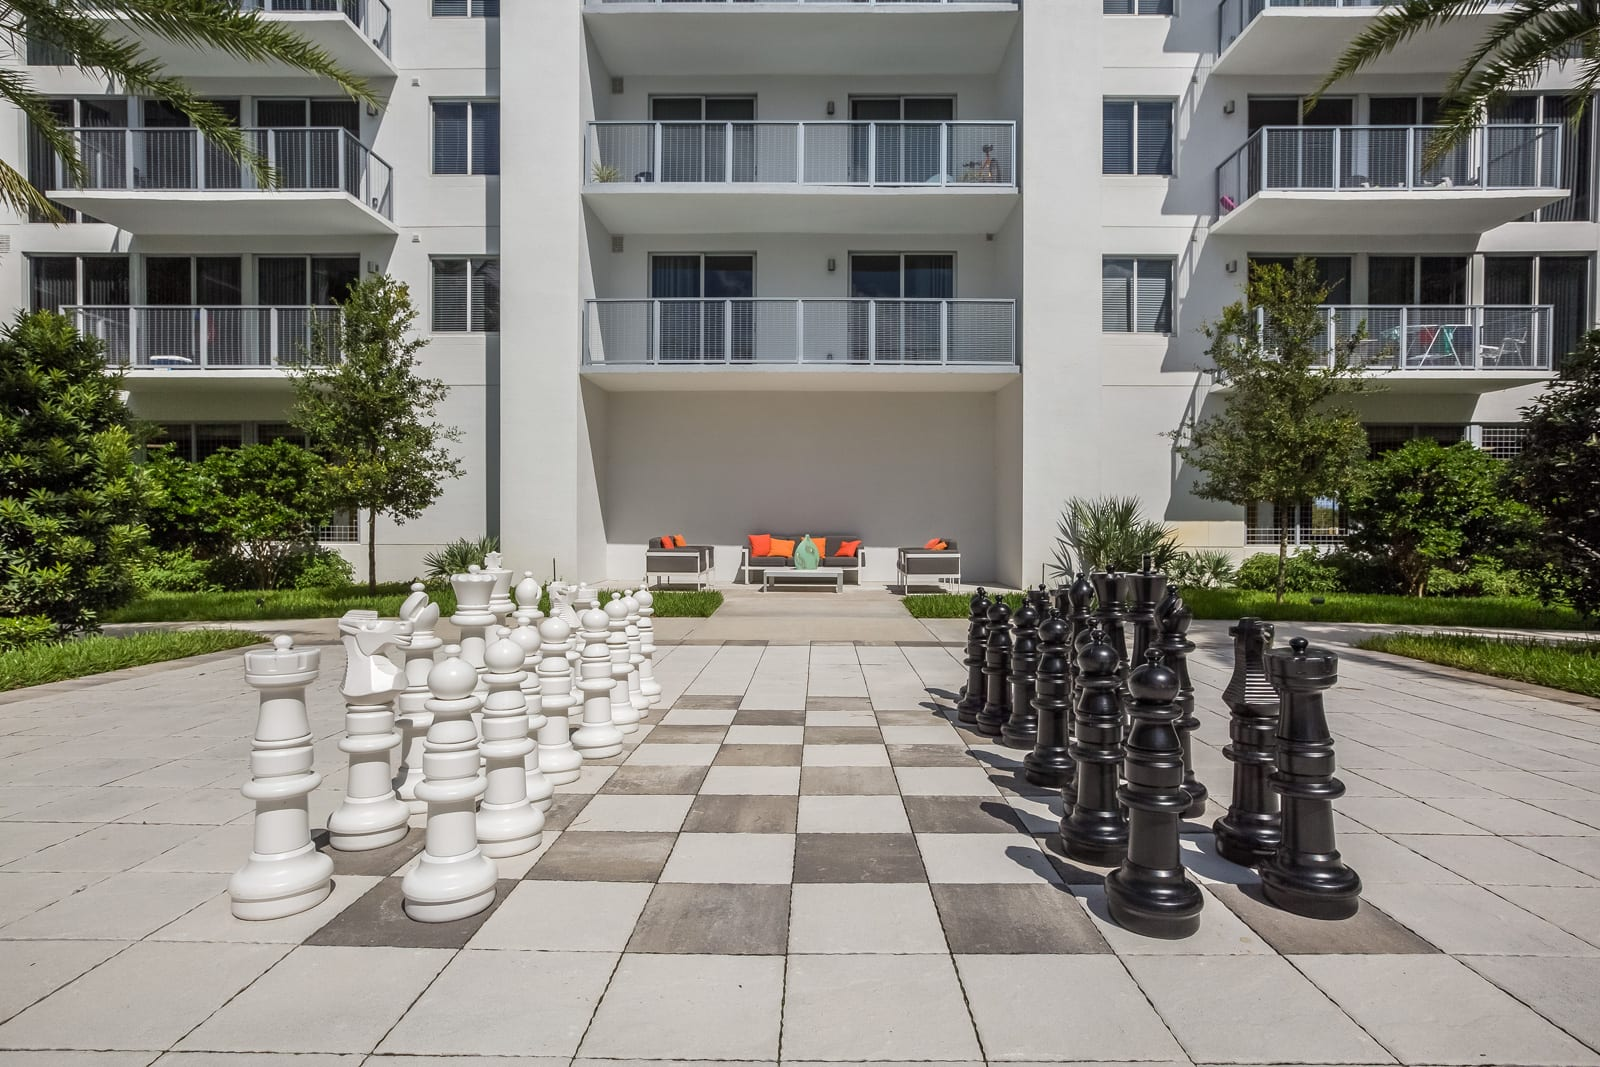 Shuffleboard, Billiards and Giant Chess Available at Allure by Windsor, Boca Raton, 33487